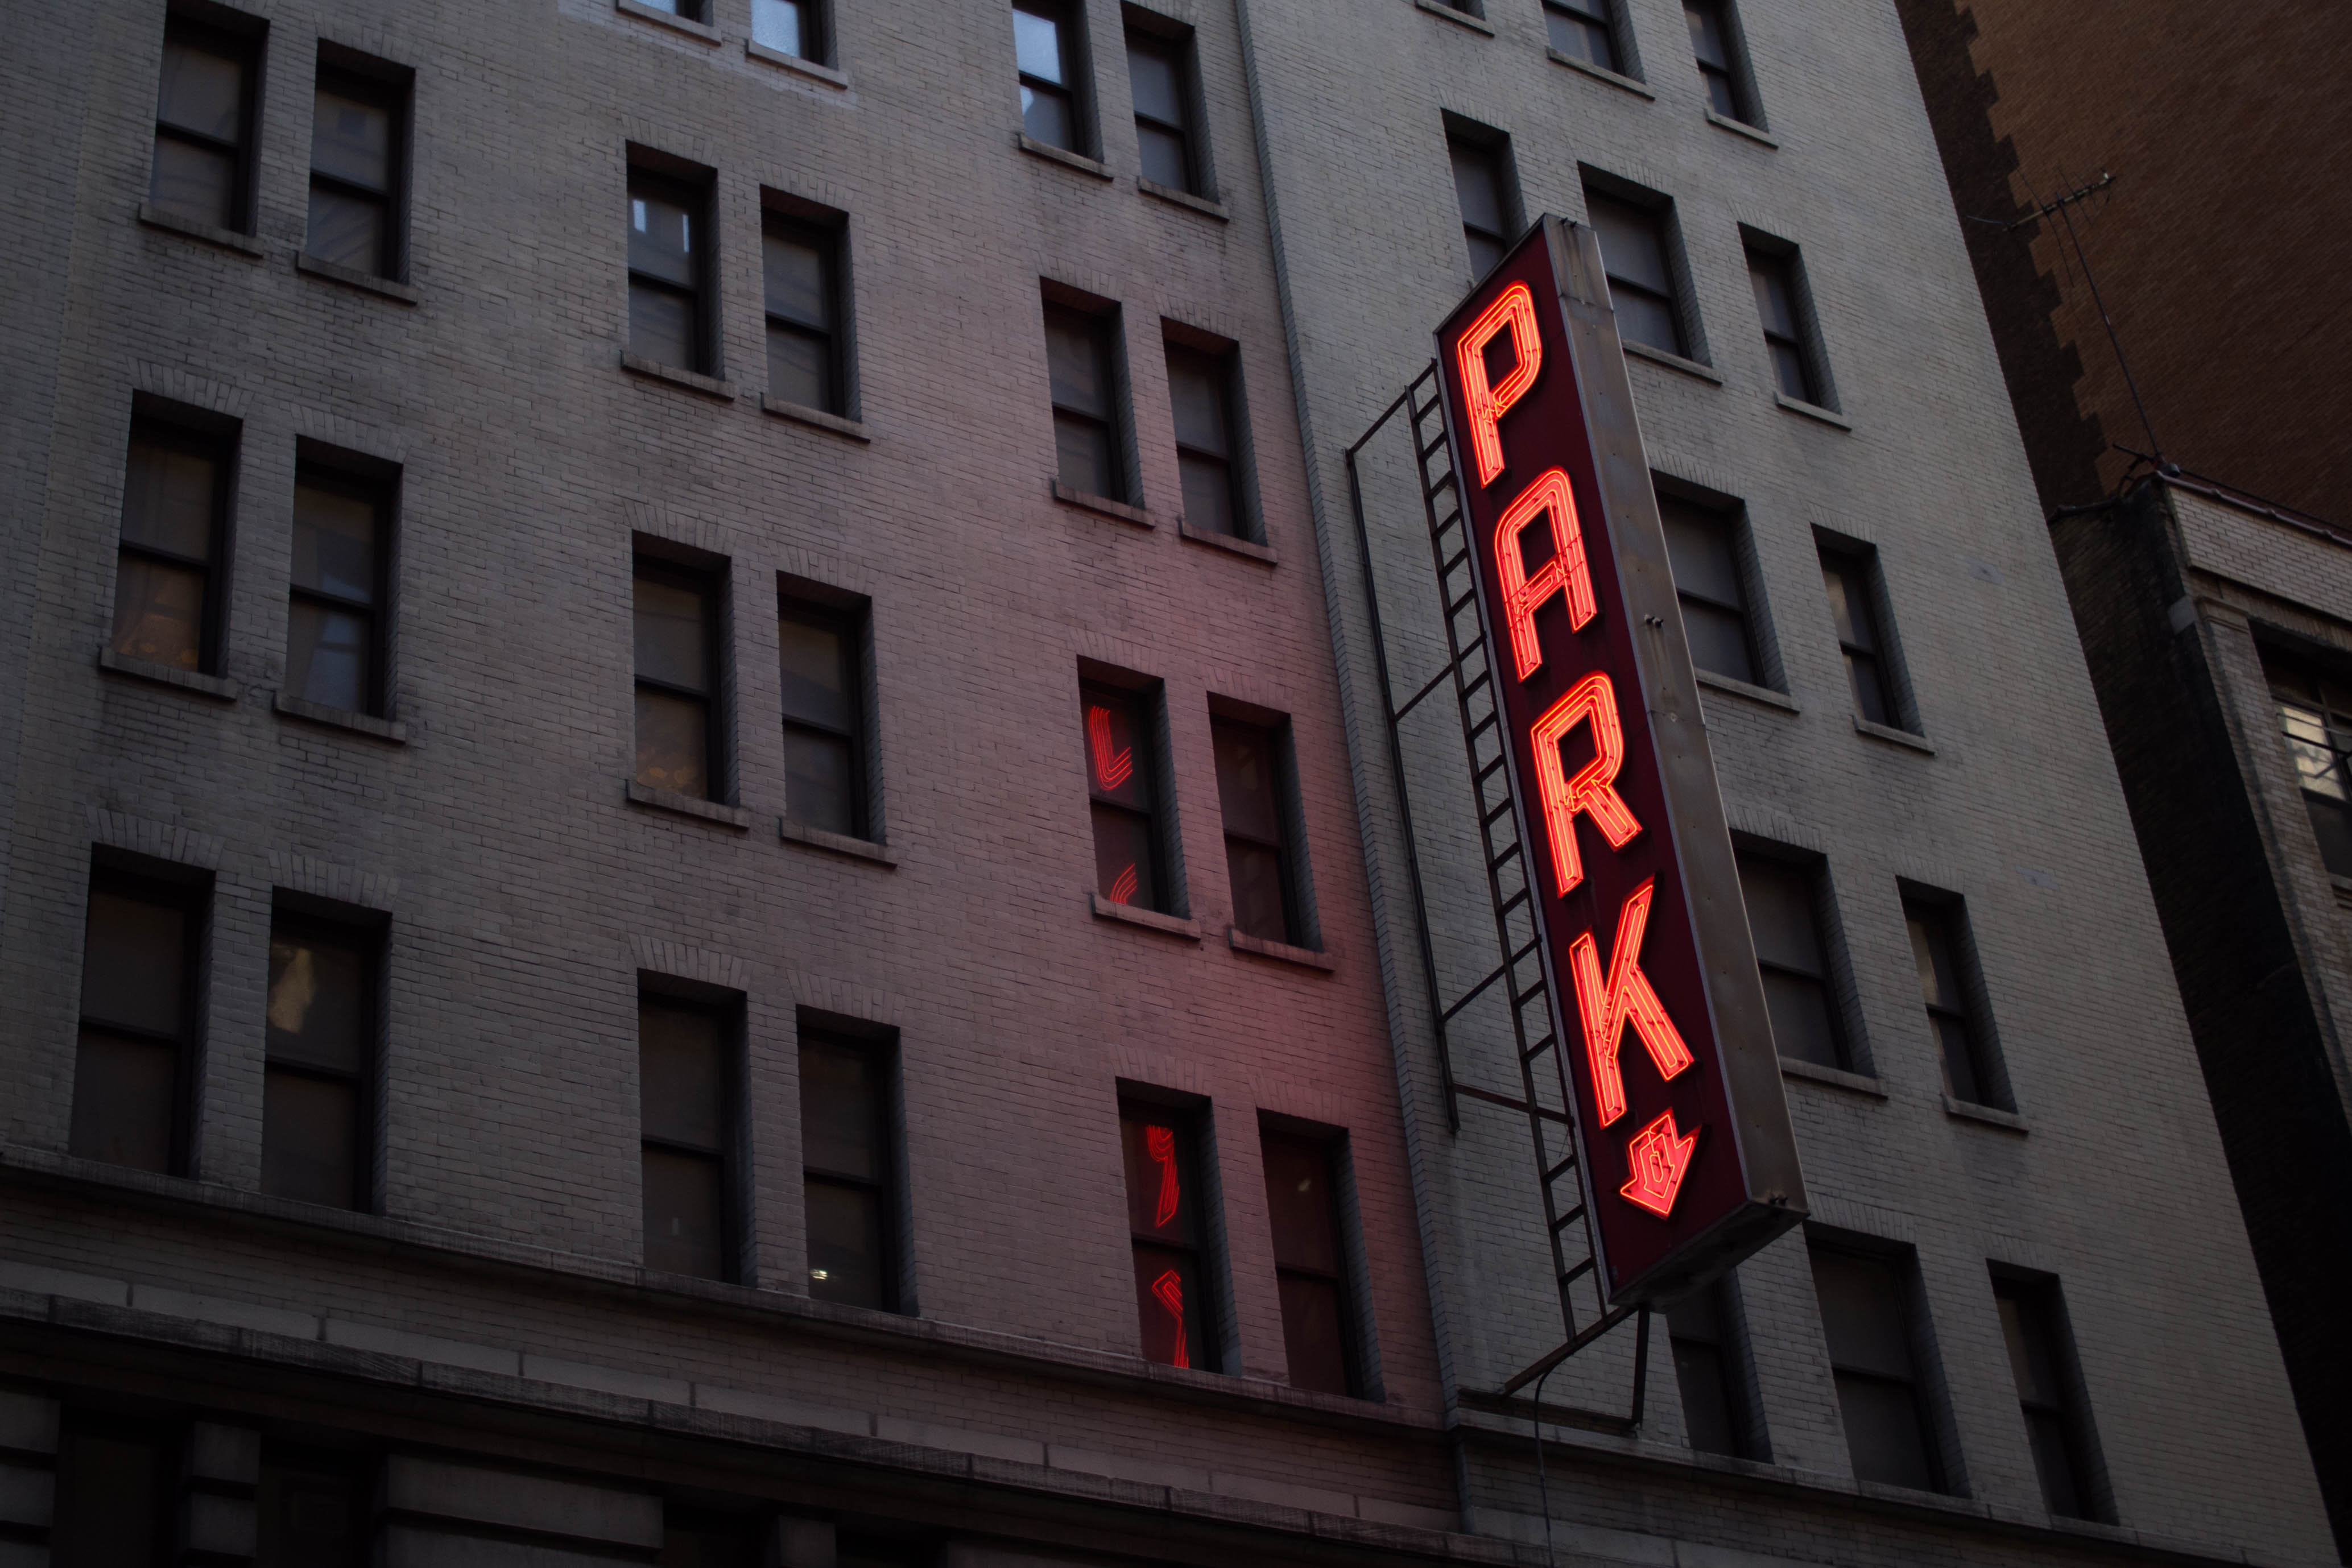 """Neon sign reads """"PARK"""" on a dark building in New York"""